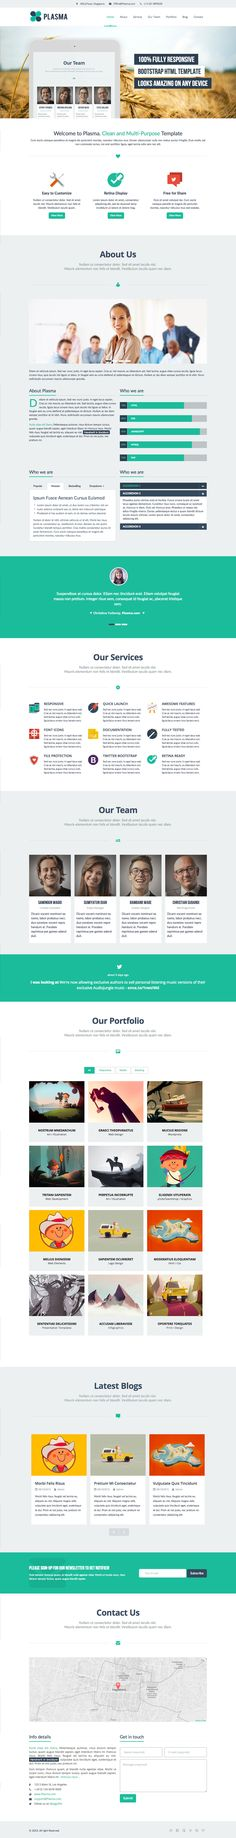 The free file of the month over at ThemeForest is, lucky for us, a pretty decent one page HTML template titled 'Plasma'. This responsive HTML template comes with all the bells and whistles you'll need to create an online portfolio - About, Services, Team, Isotope Portfolio, Testimonials, a Blog Feed and a pretty neat AJAX Contact Form.